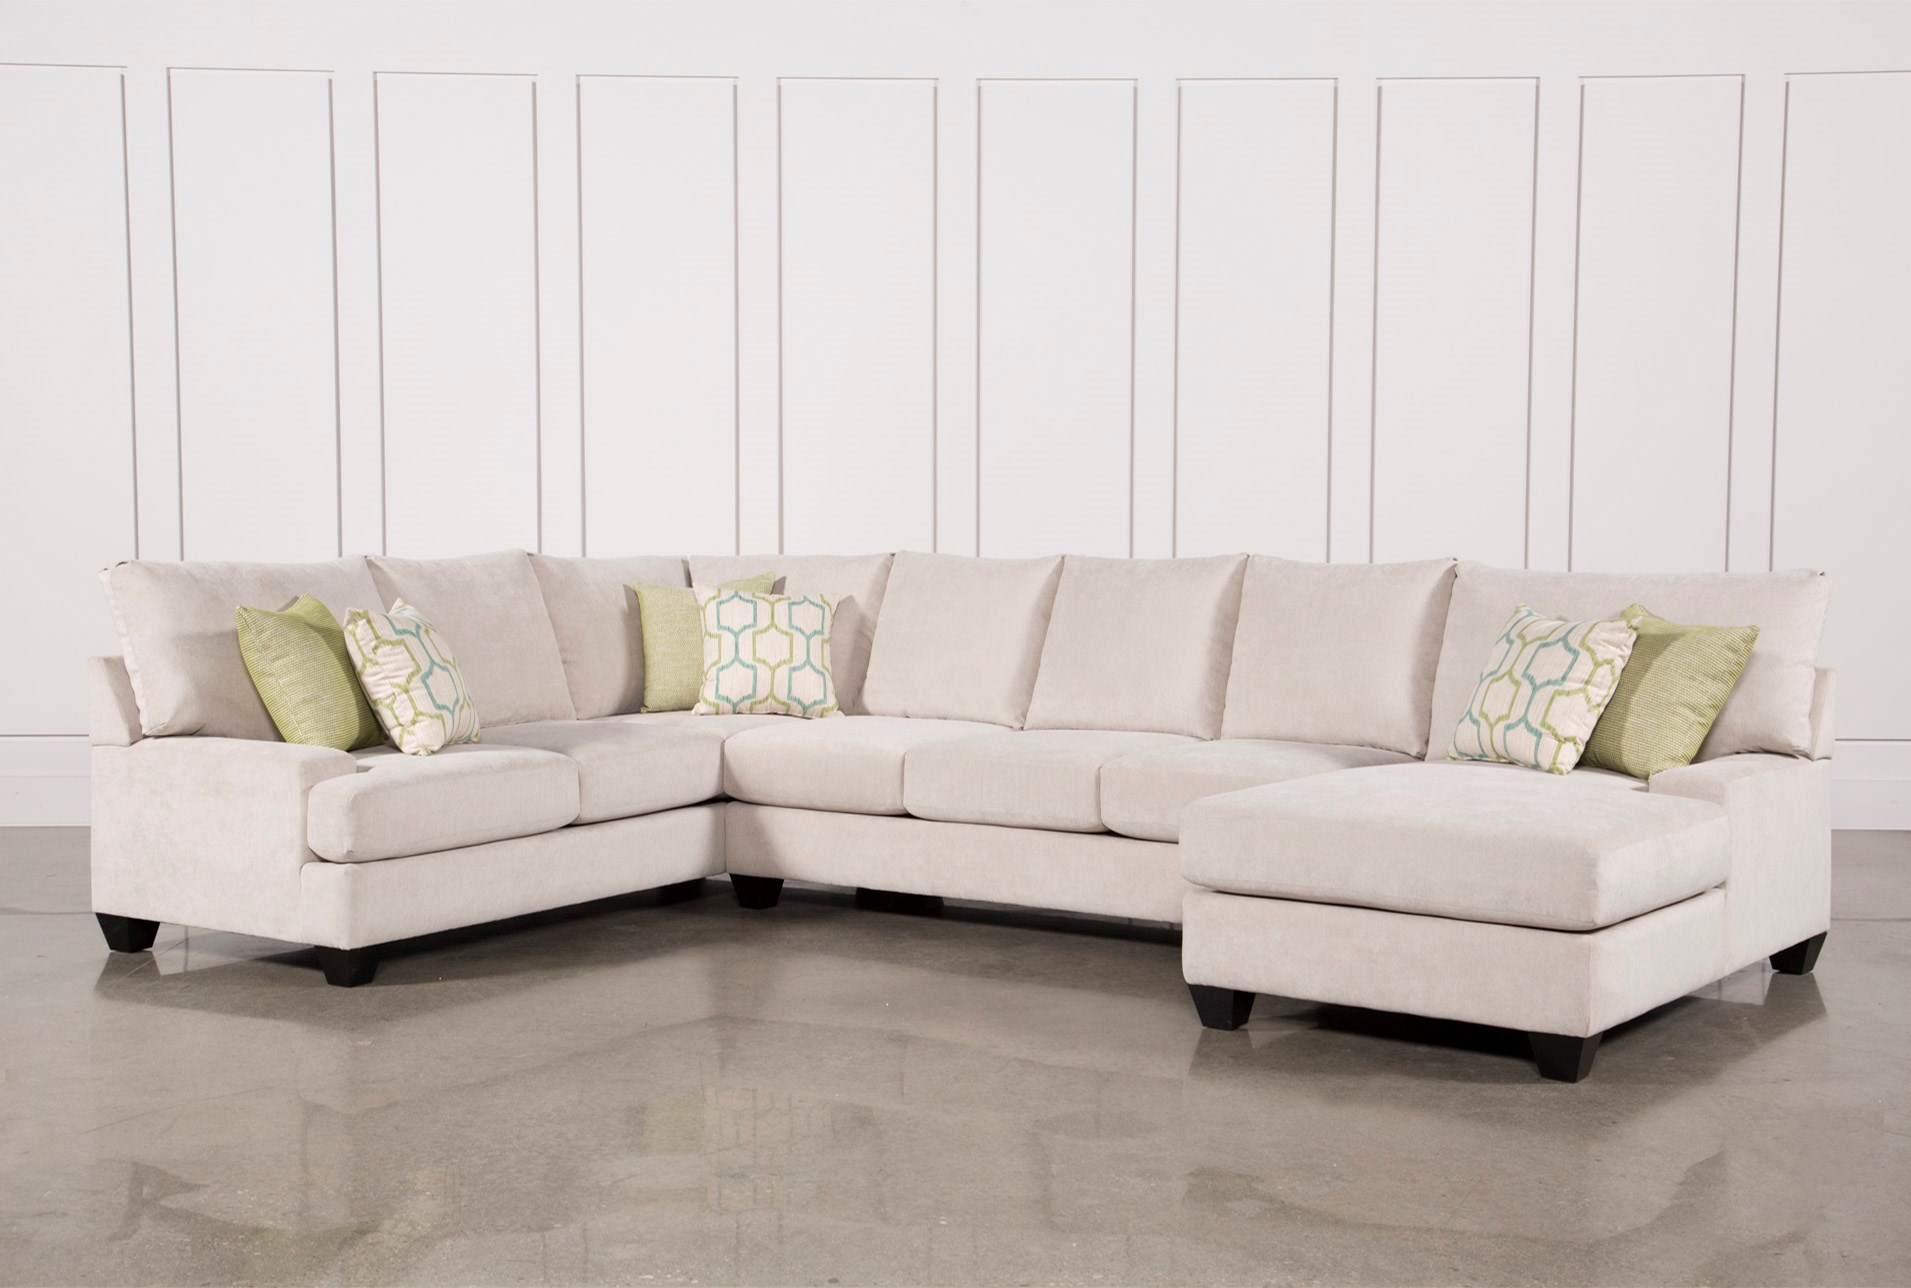 sectional free with garden slipcover chaise shipping hamptons home today overstock product